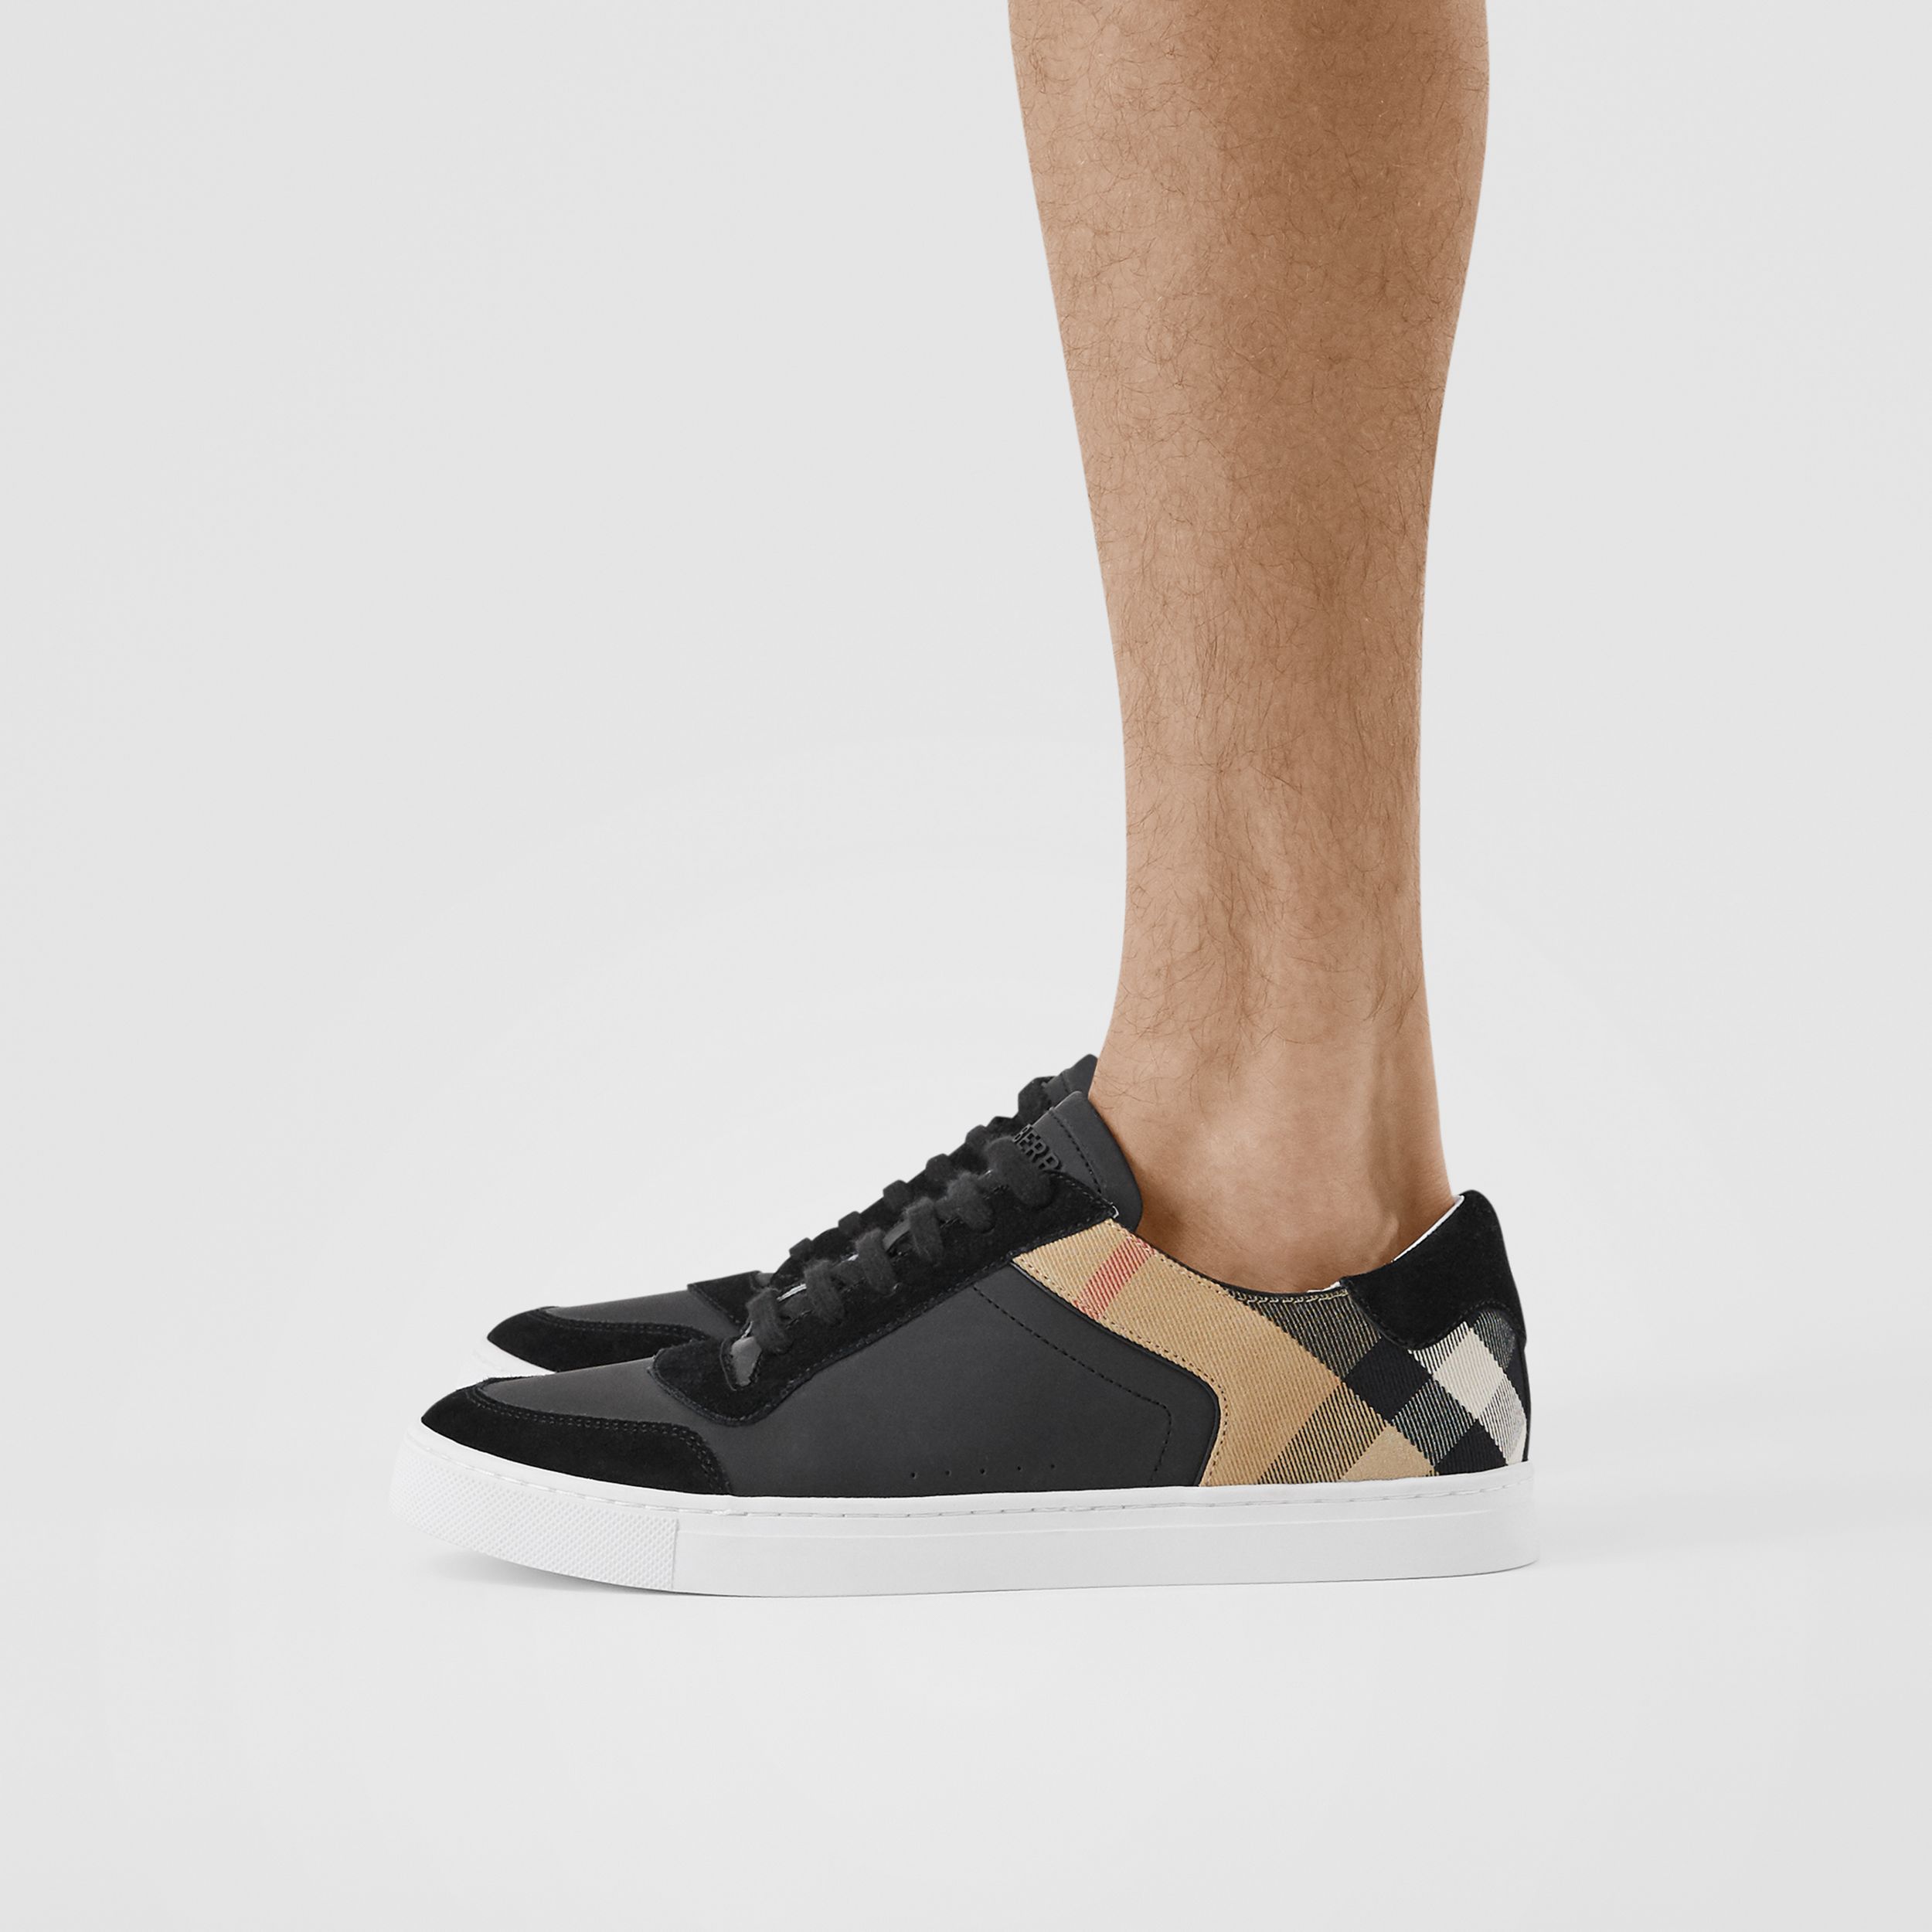 Leather, Suede and House Check Sneakers in Black - Men | Burberry - 3